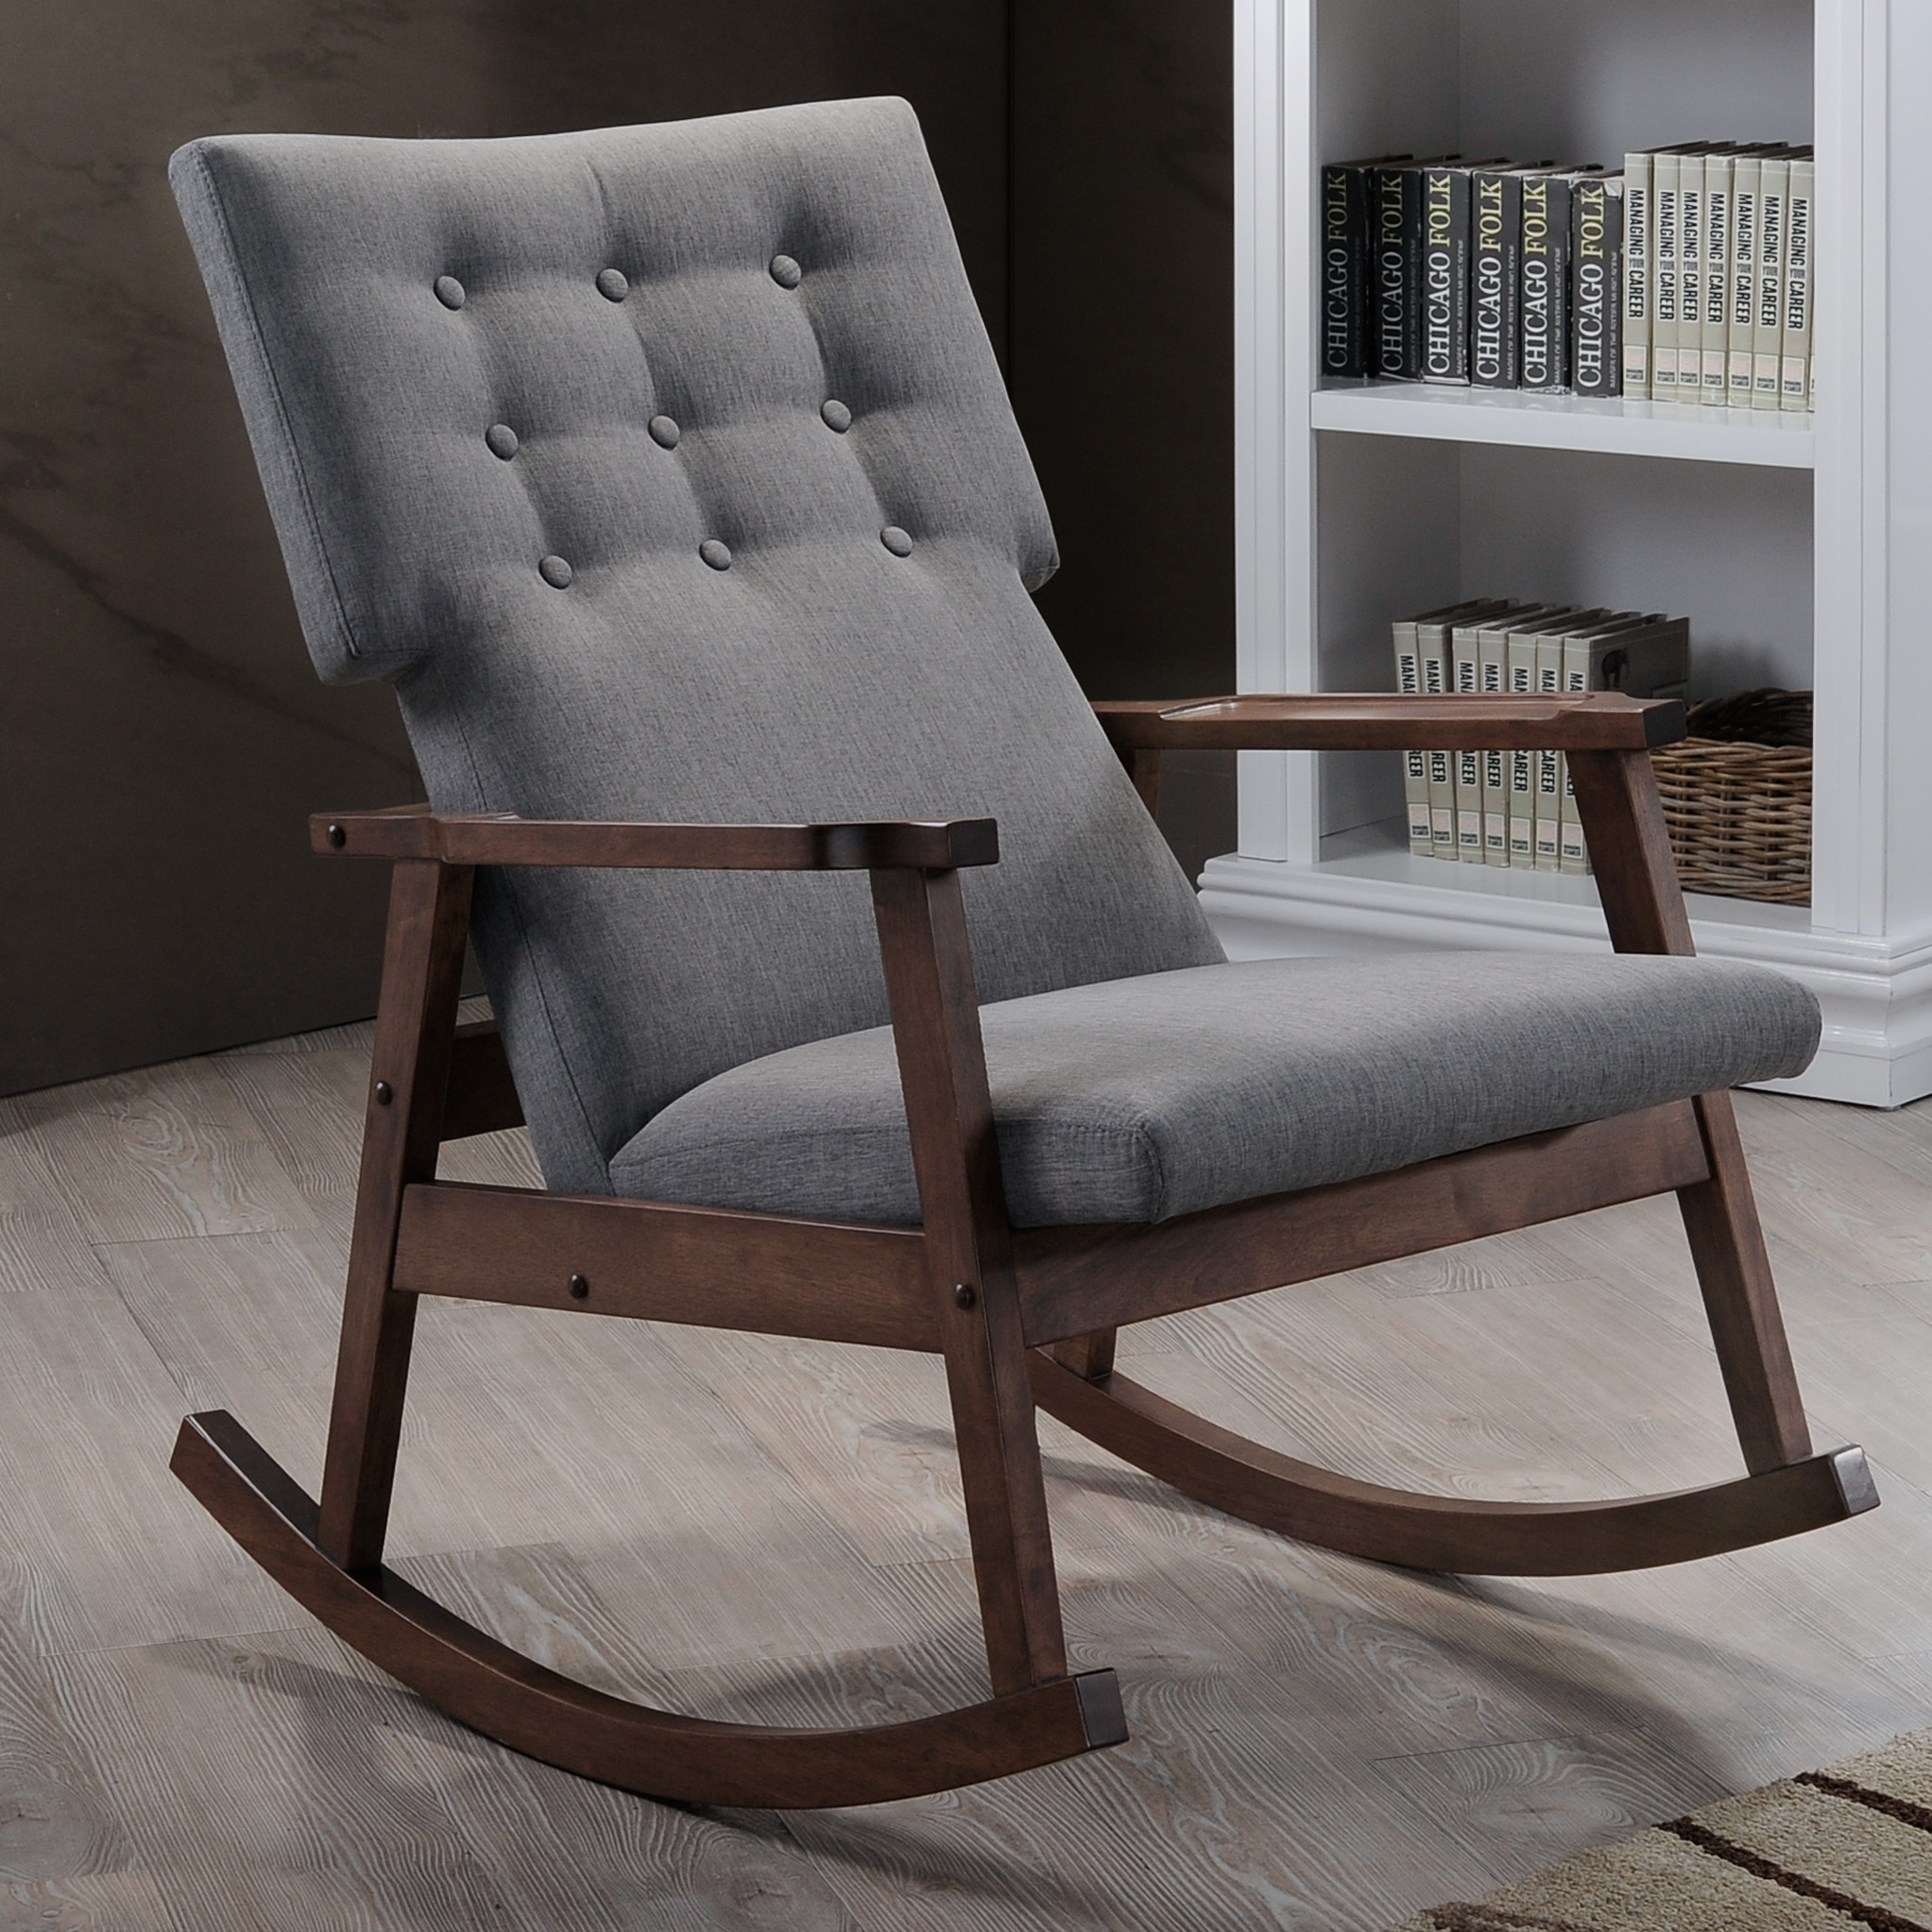 Furniture: Beautiful Upholstered Rocking Chair For Home Inside Rocking Chairs Arm Chairs For Living And Nursery Room (View 7 of 20)